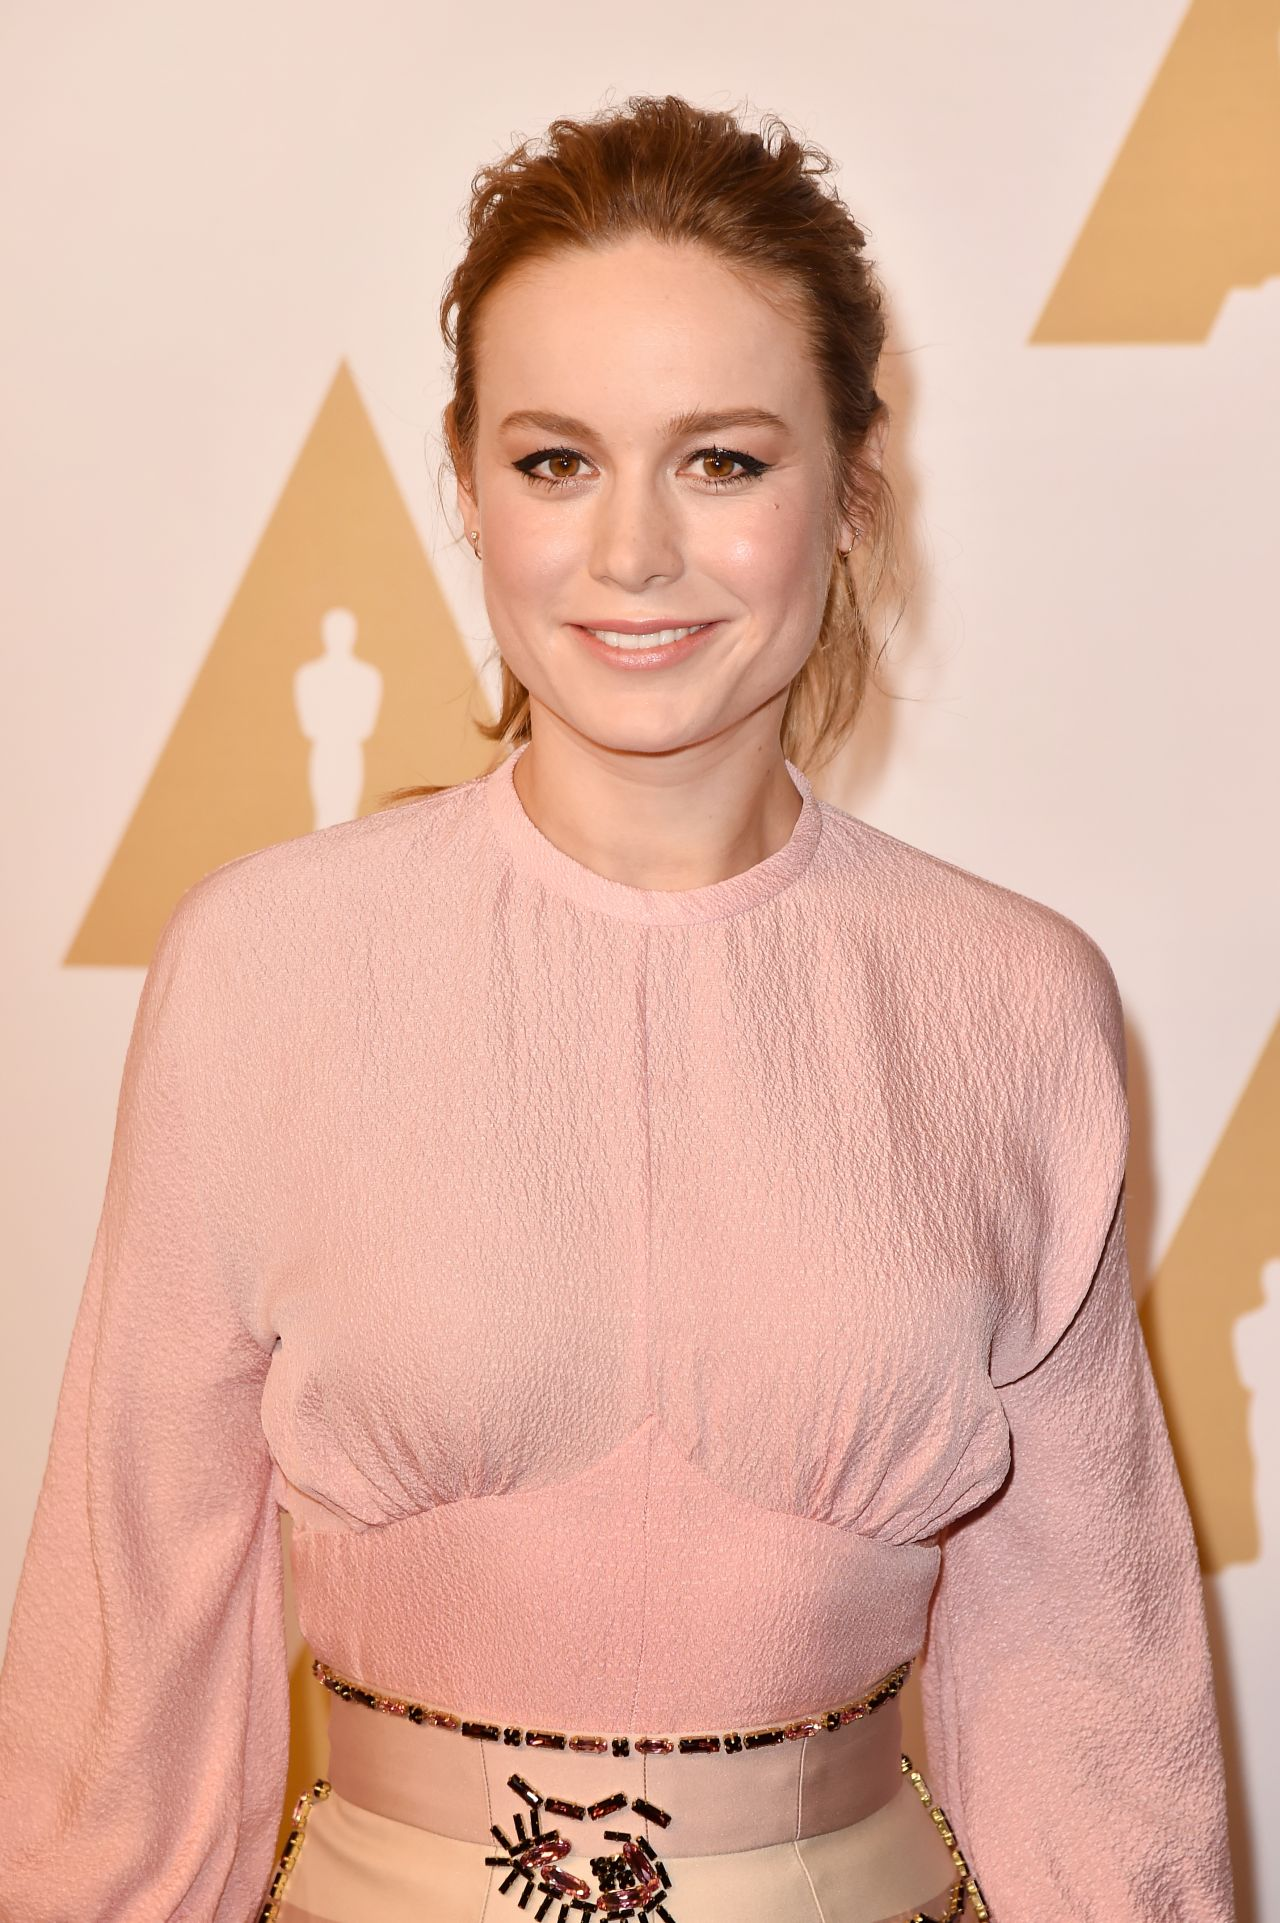 brie-larson-academy-awards-2016-nominee-luncheon-in-beverly-hills-3